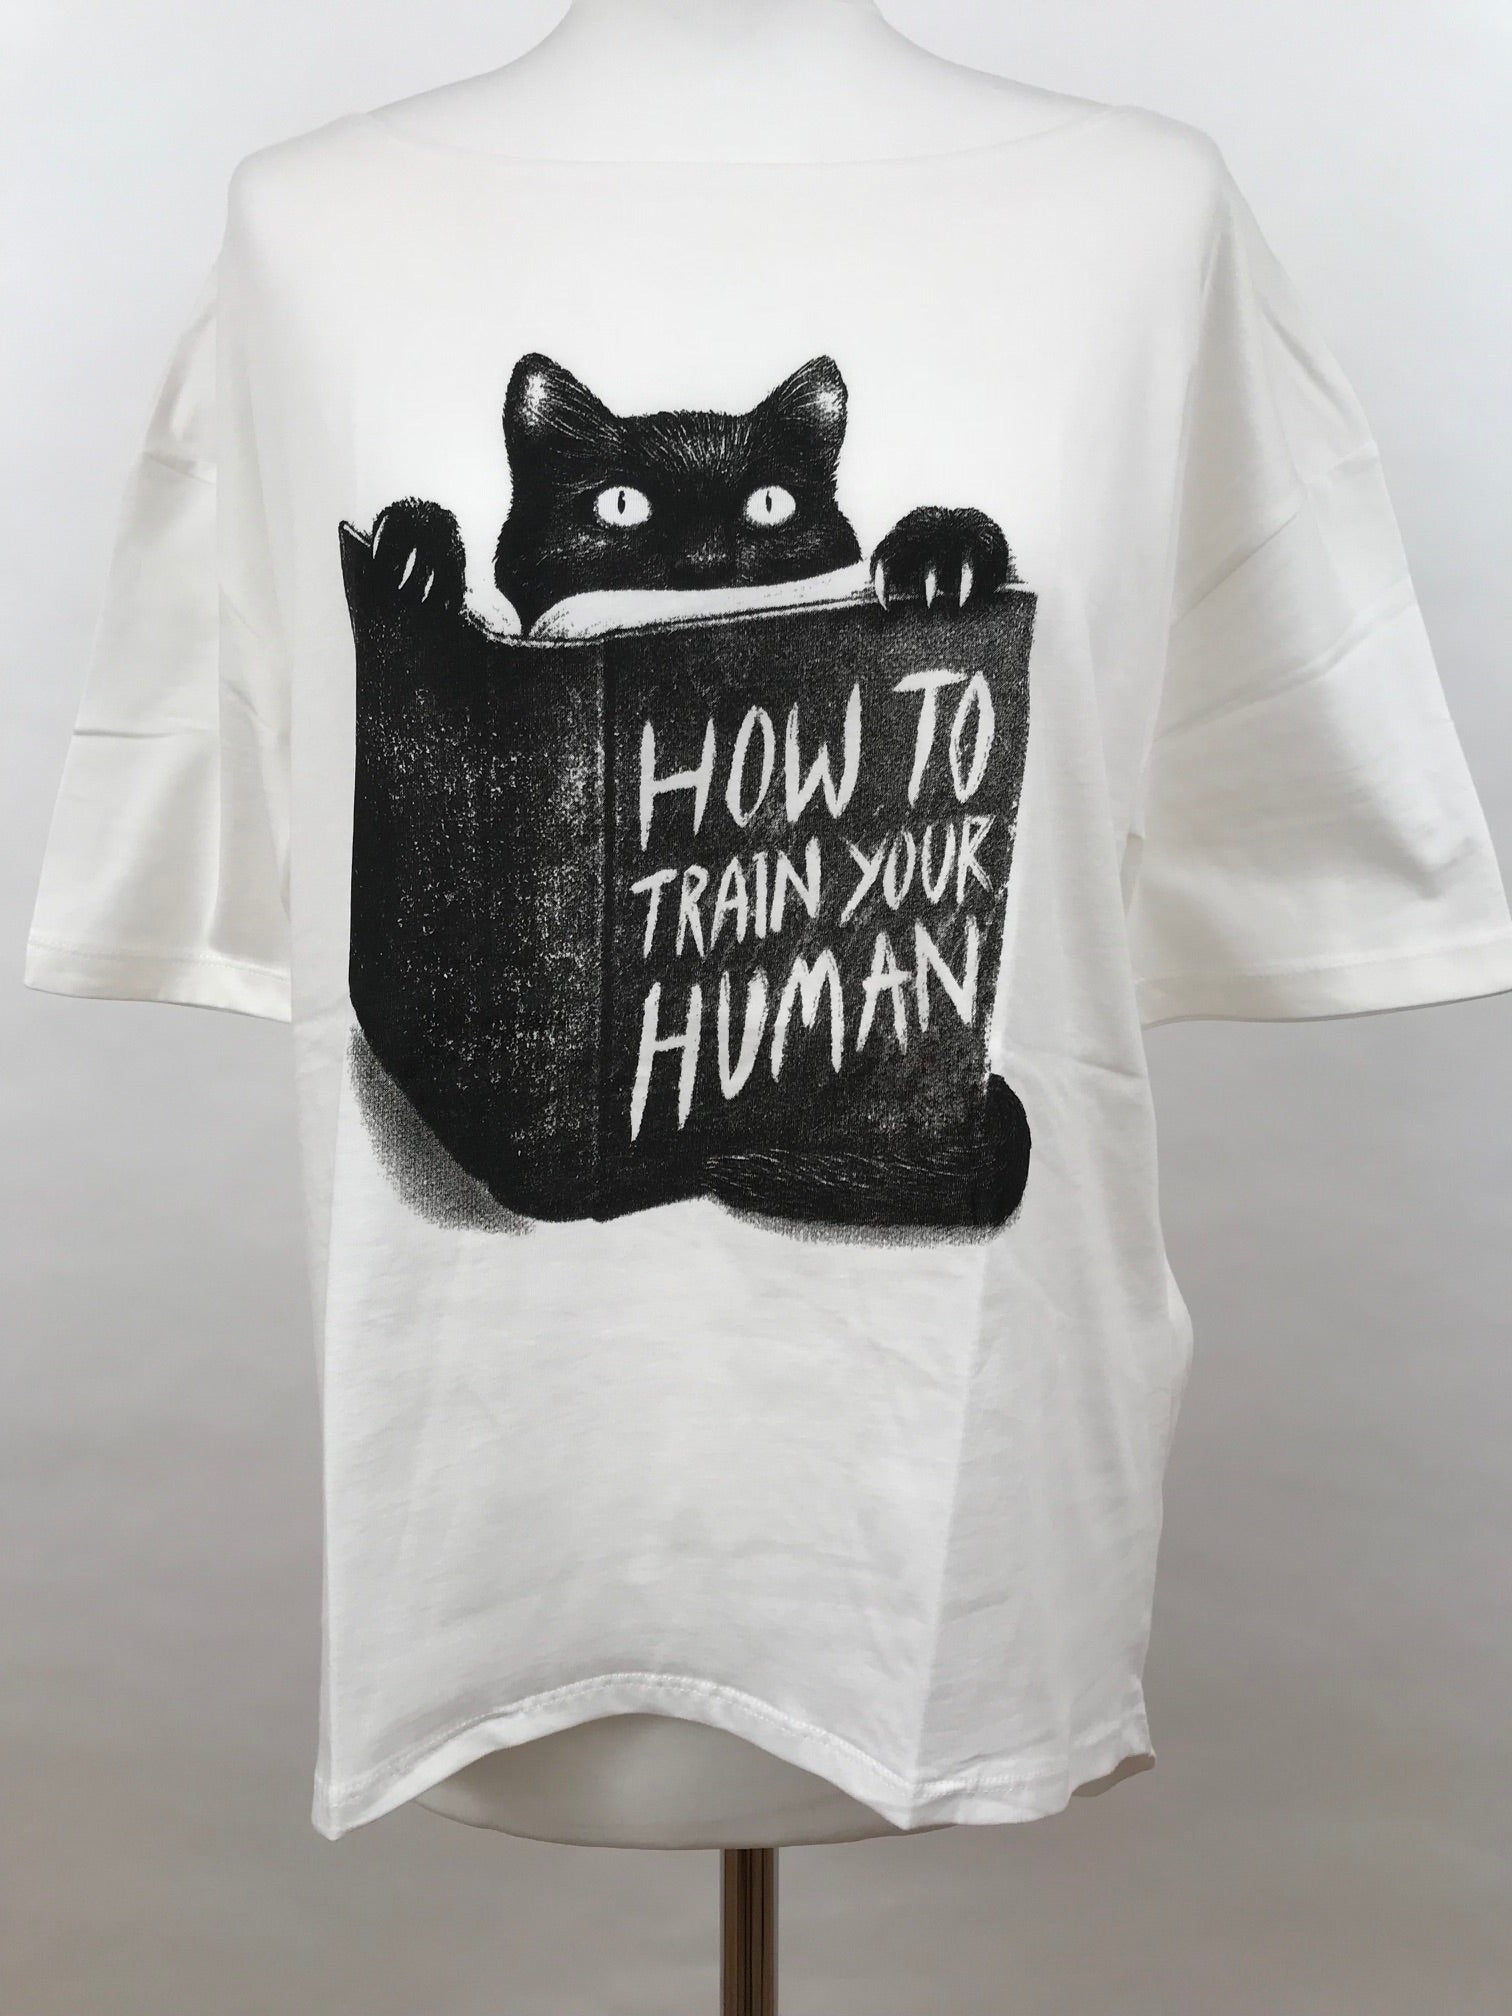 Oii Oversize T-Shirt Cat Train Human